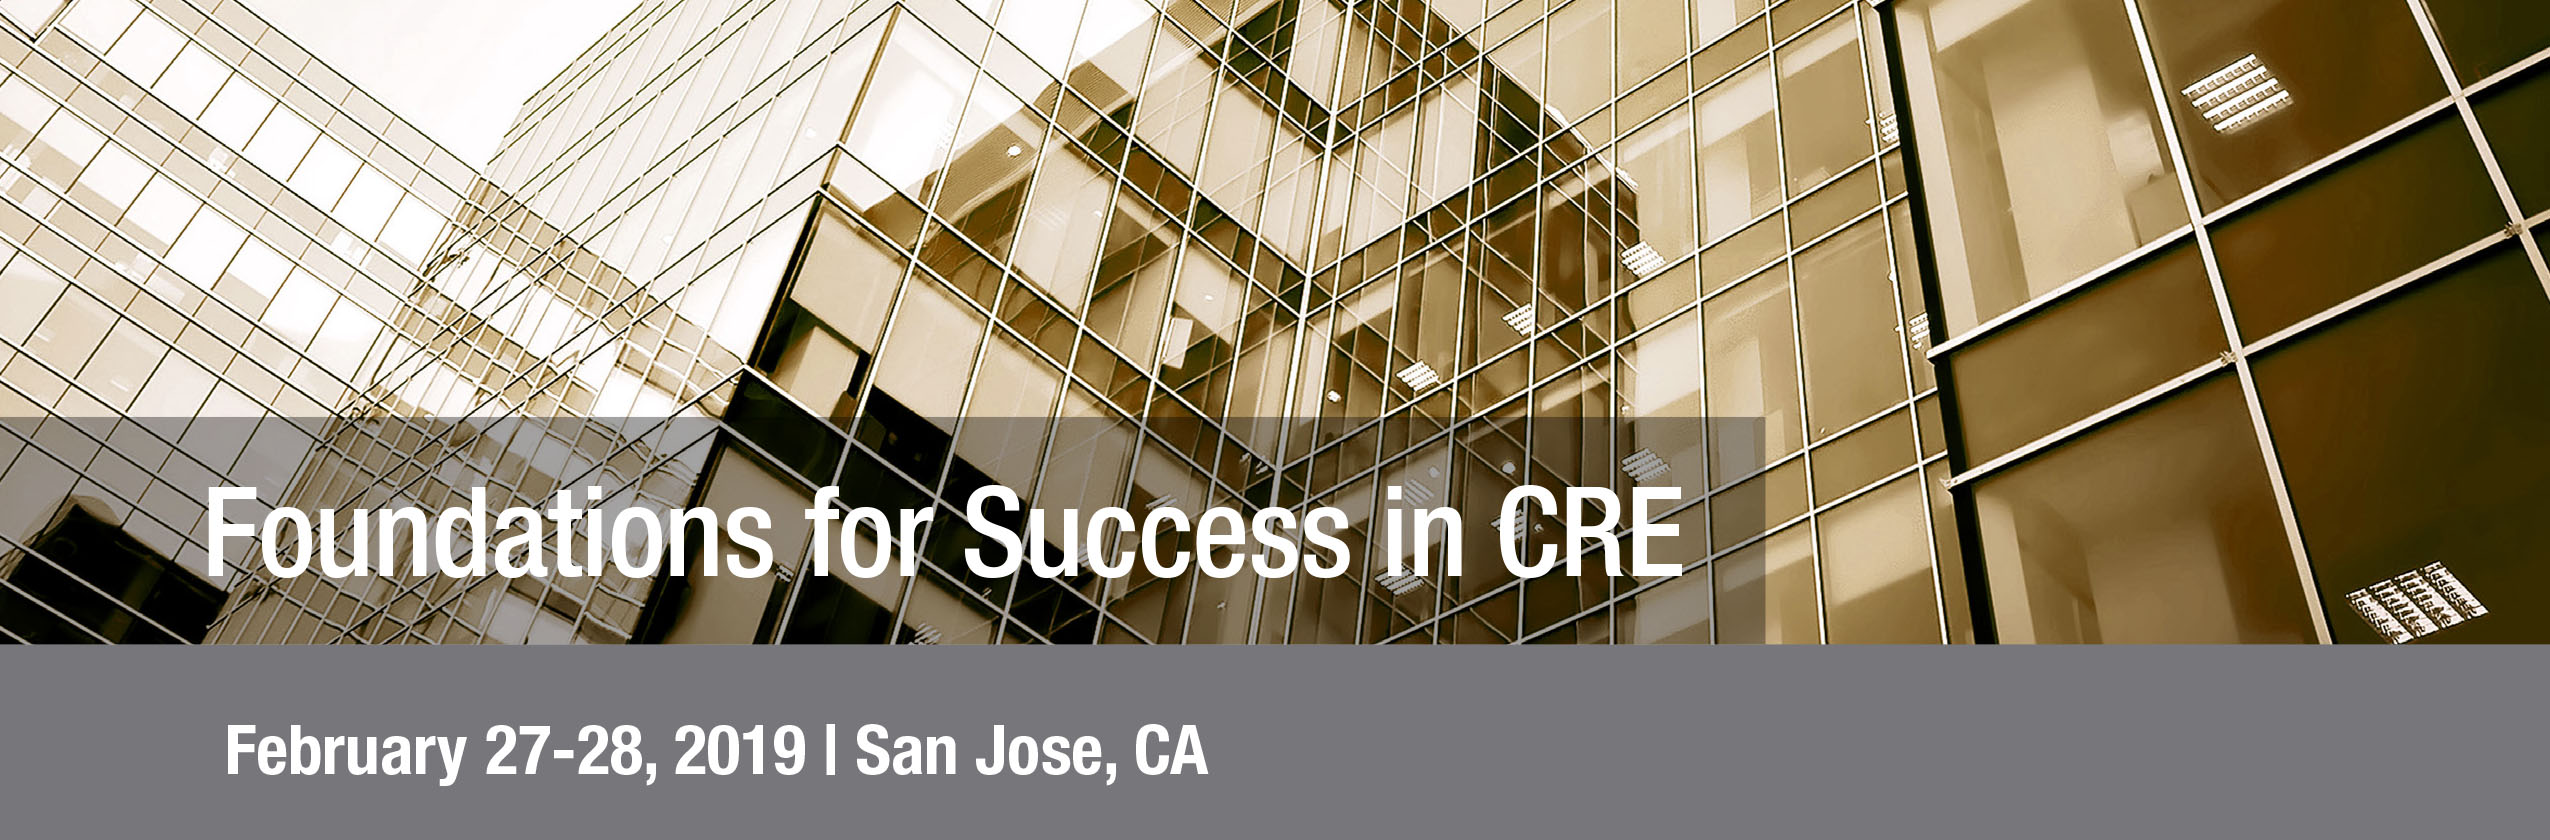 Foundations for Success in CRE in San Jose Feb. 27-28 @ Santa Clara County Association of Realtors